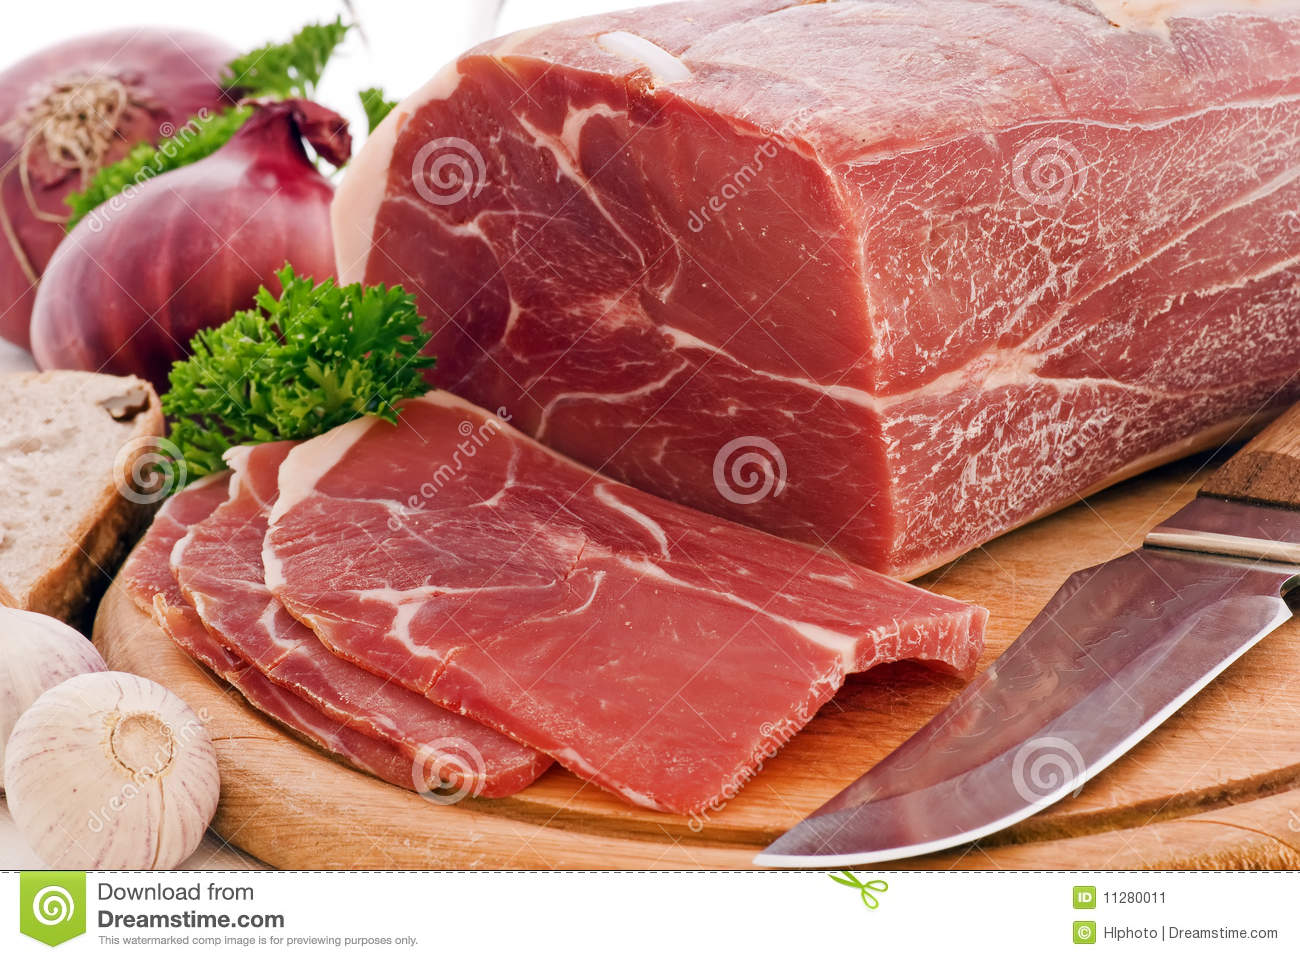 how to cook gammon slices